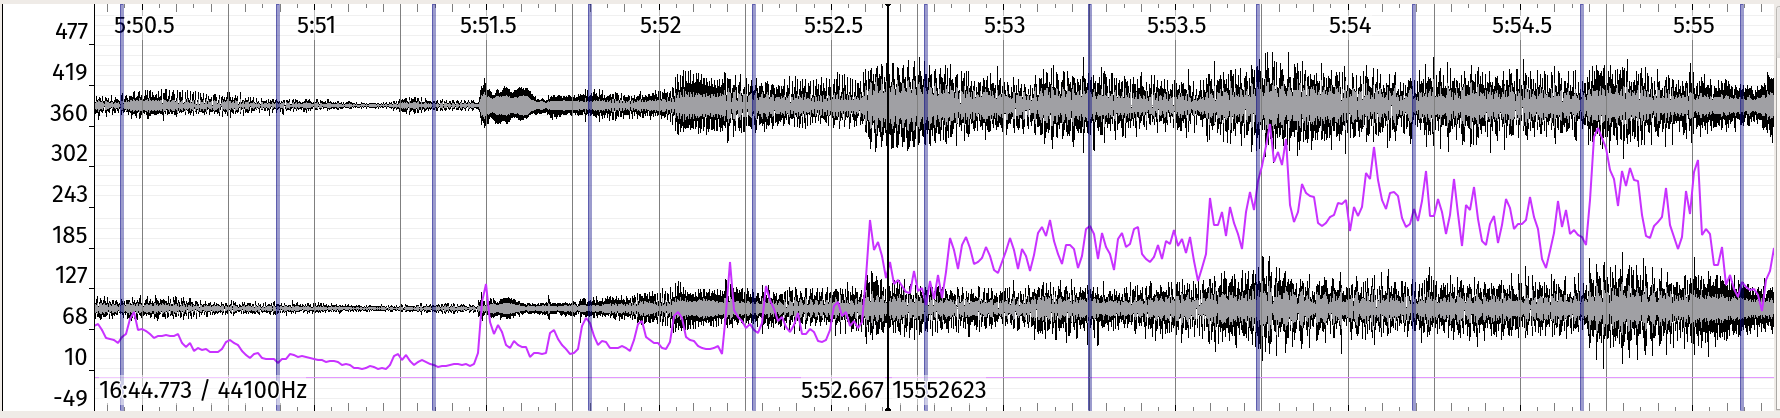 4951d9bd040 A pane with four layers: waveform in black, time ruler in grey, time values  in purple and time instants in blue.